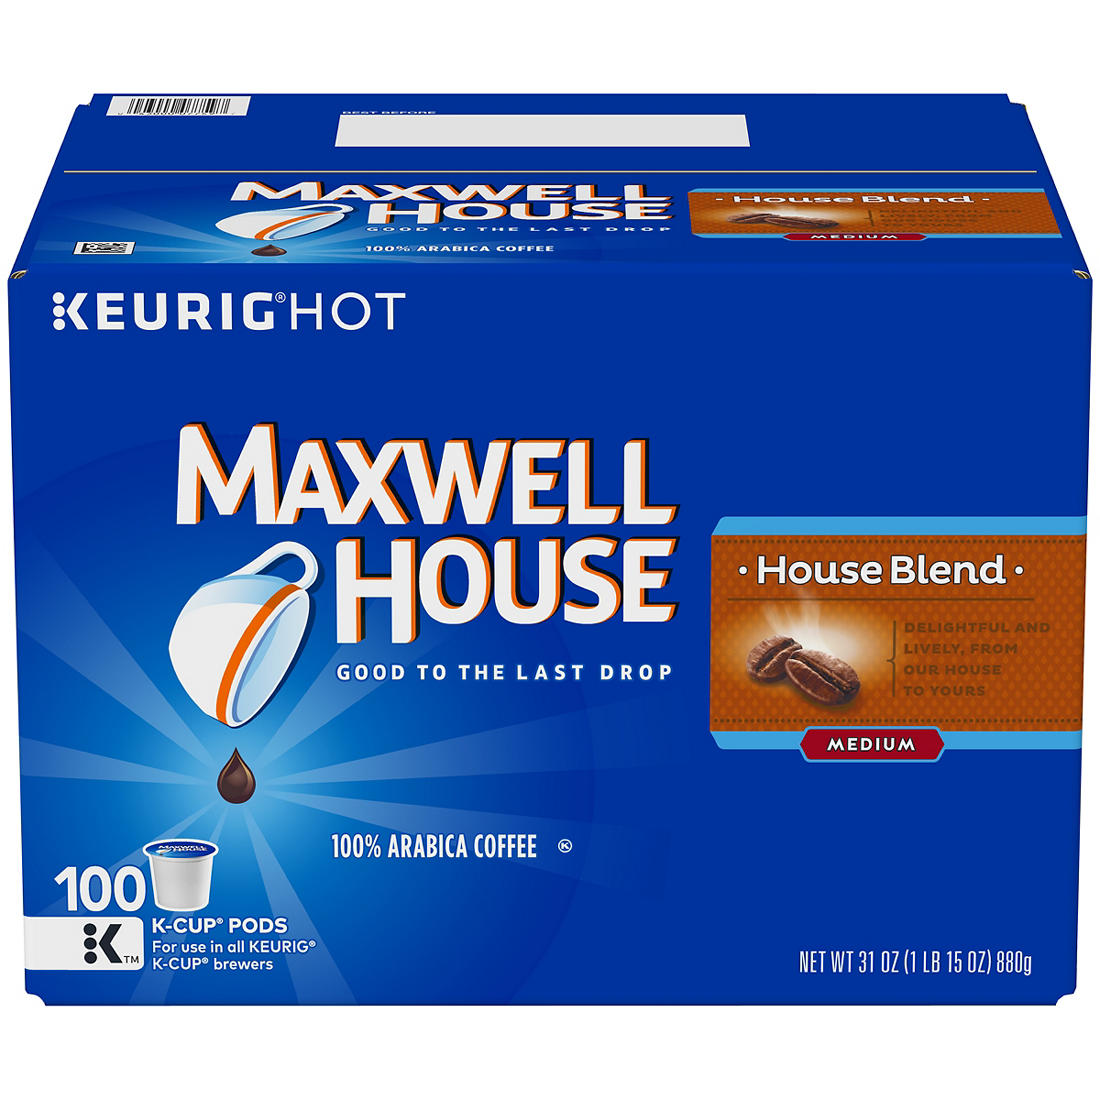 image regarding Maxwell House Coffee Coupons Printable named Maxwell Home Area Mixture K-Cup Packs, 100 ct.